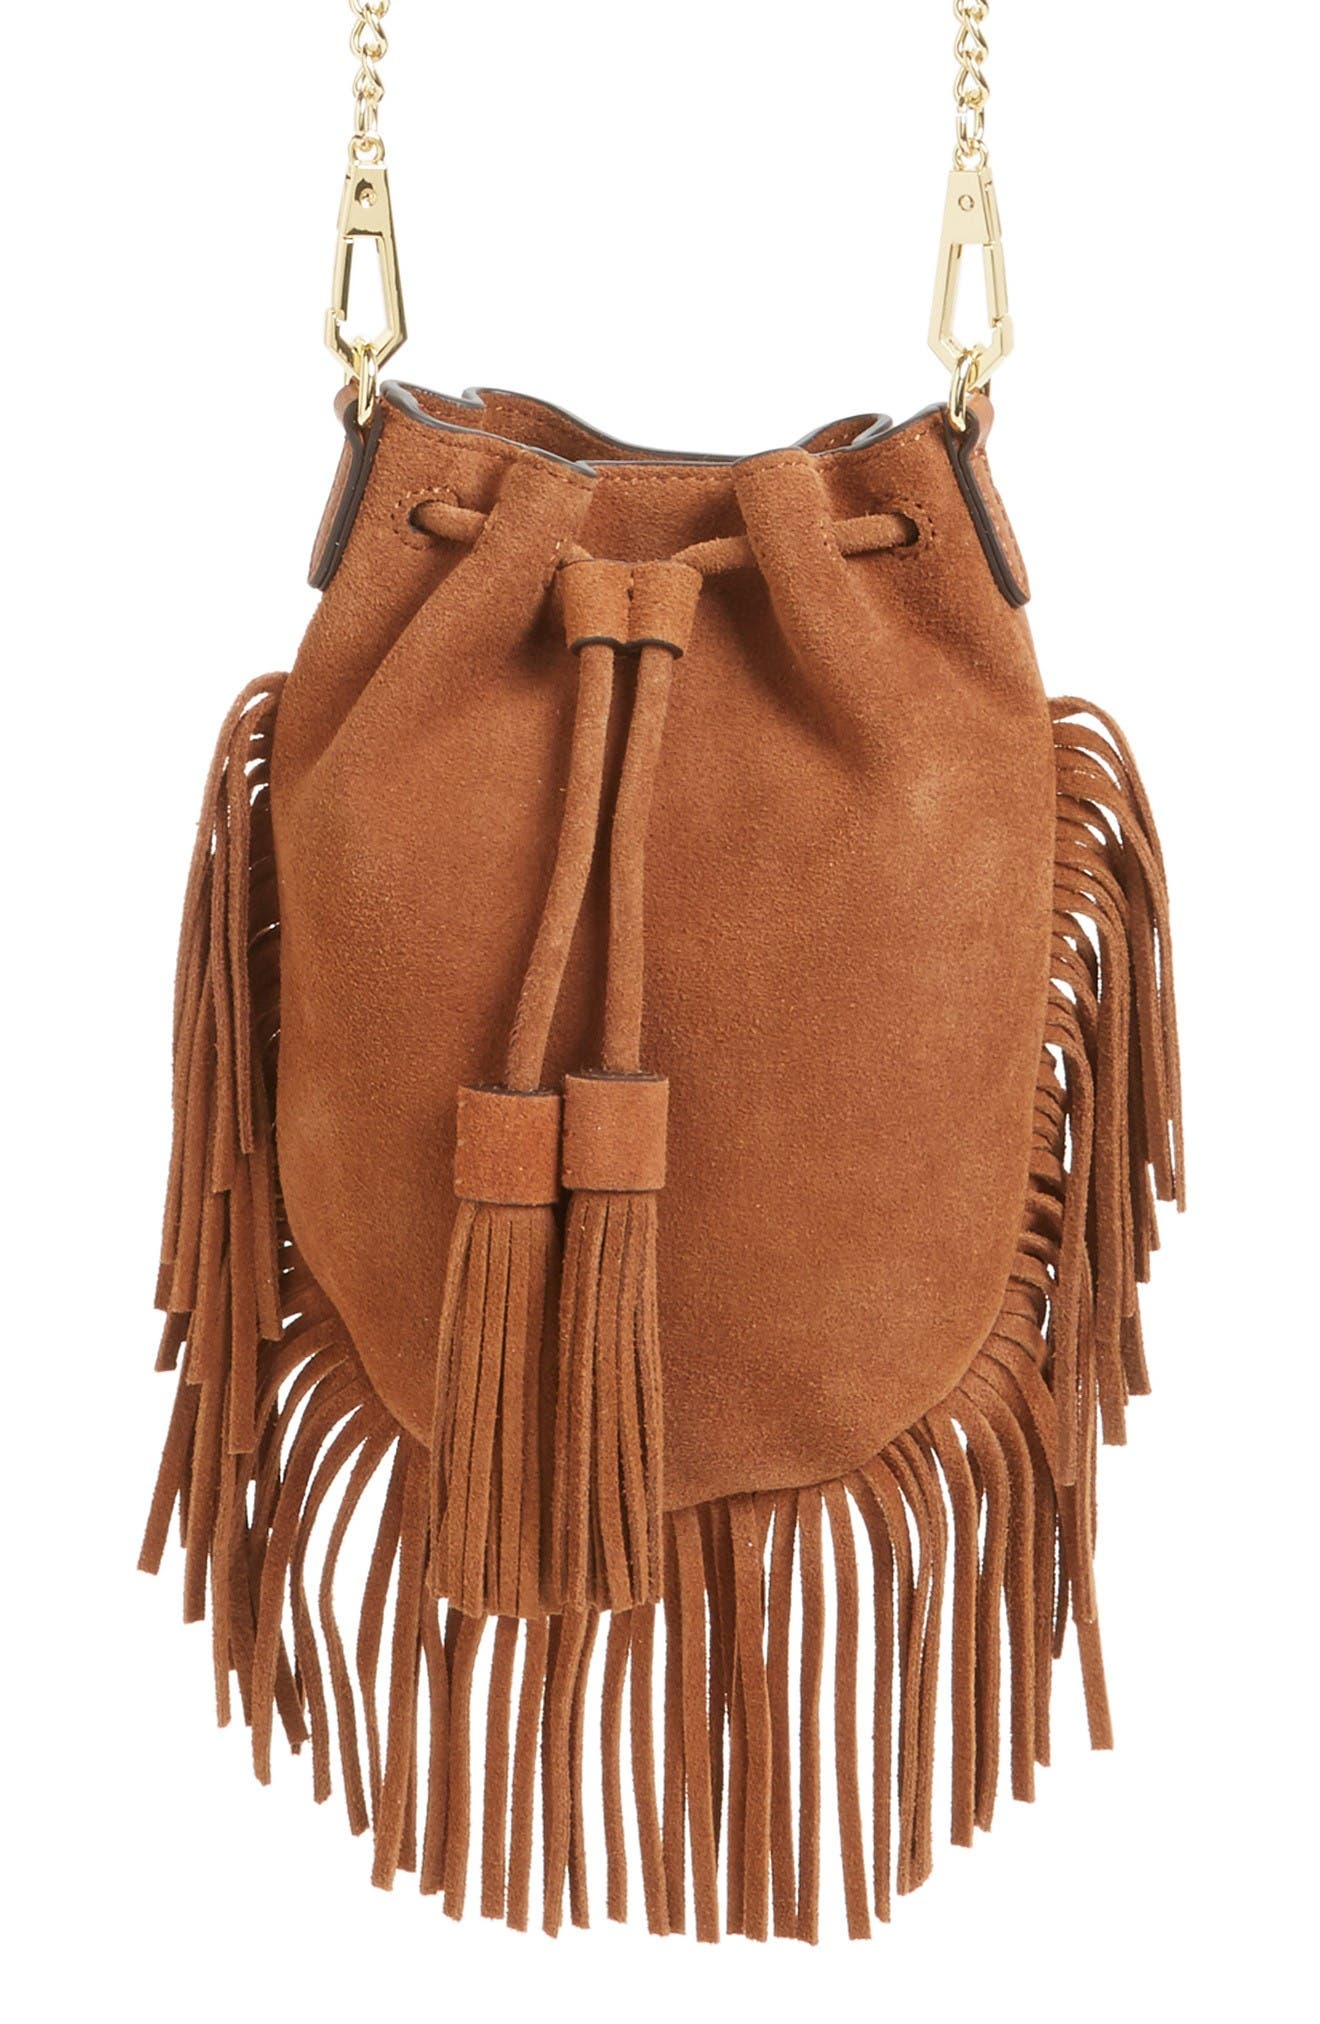 Rebecca Minkoff Fallen Suede Phone Crossbody Bag